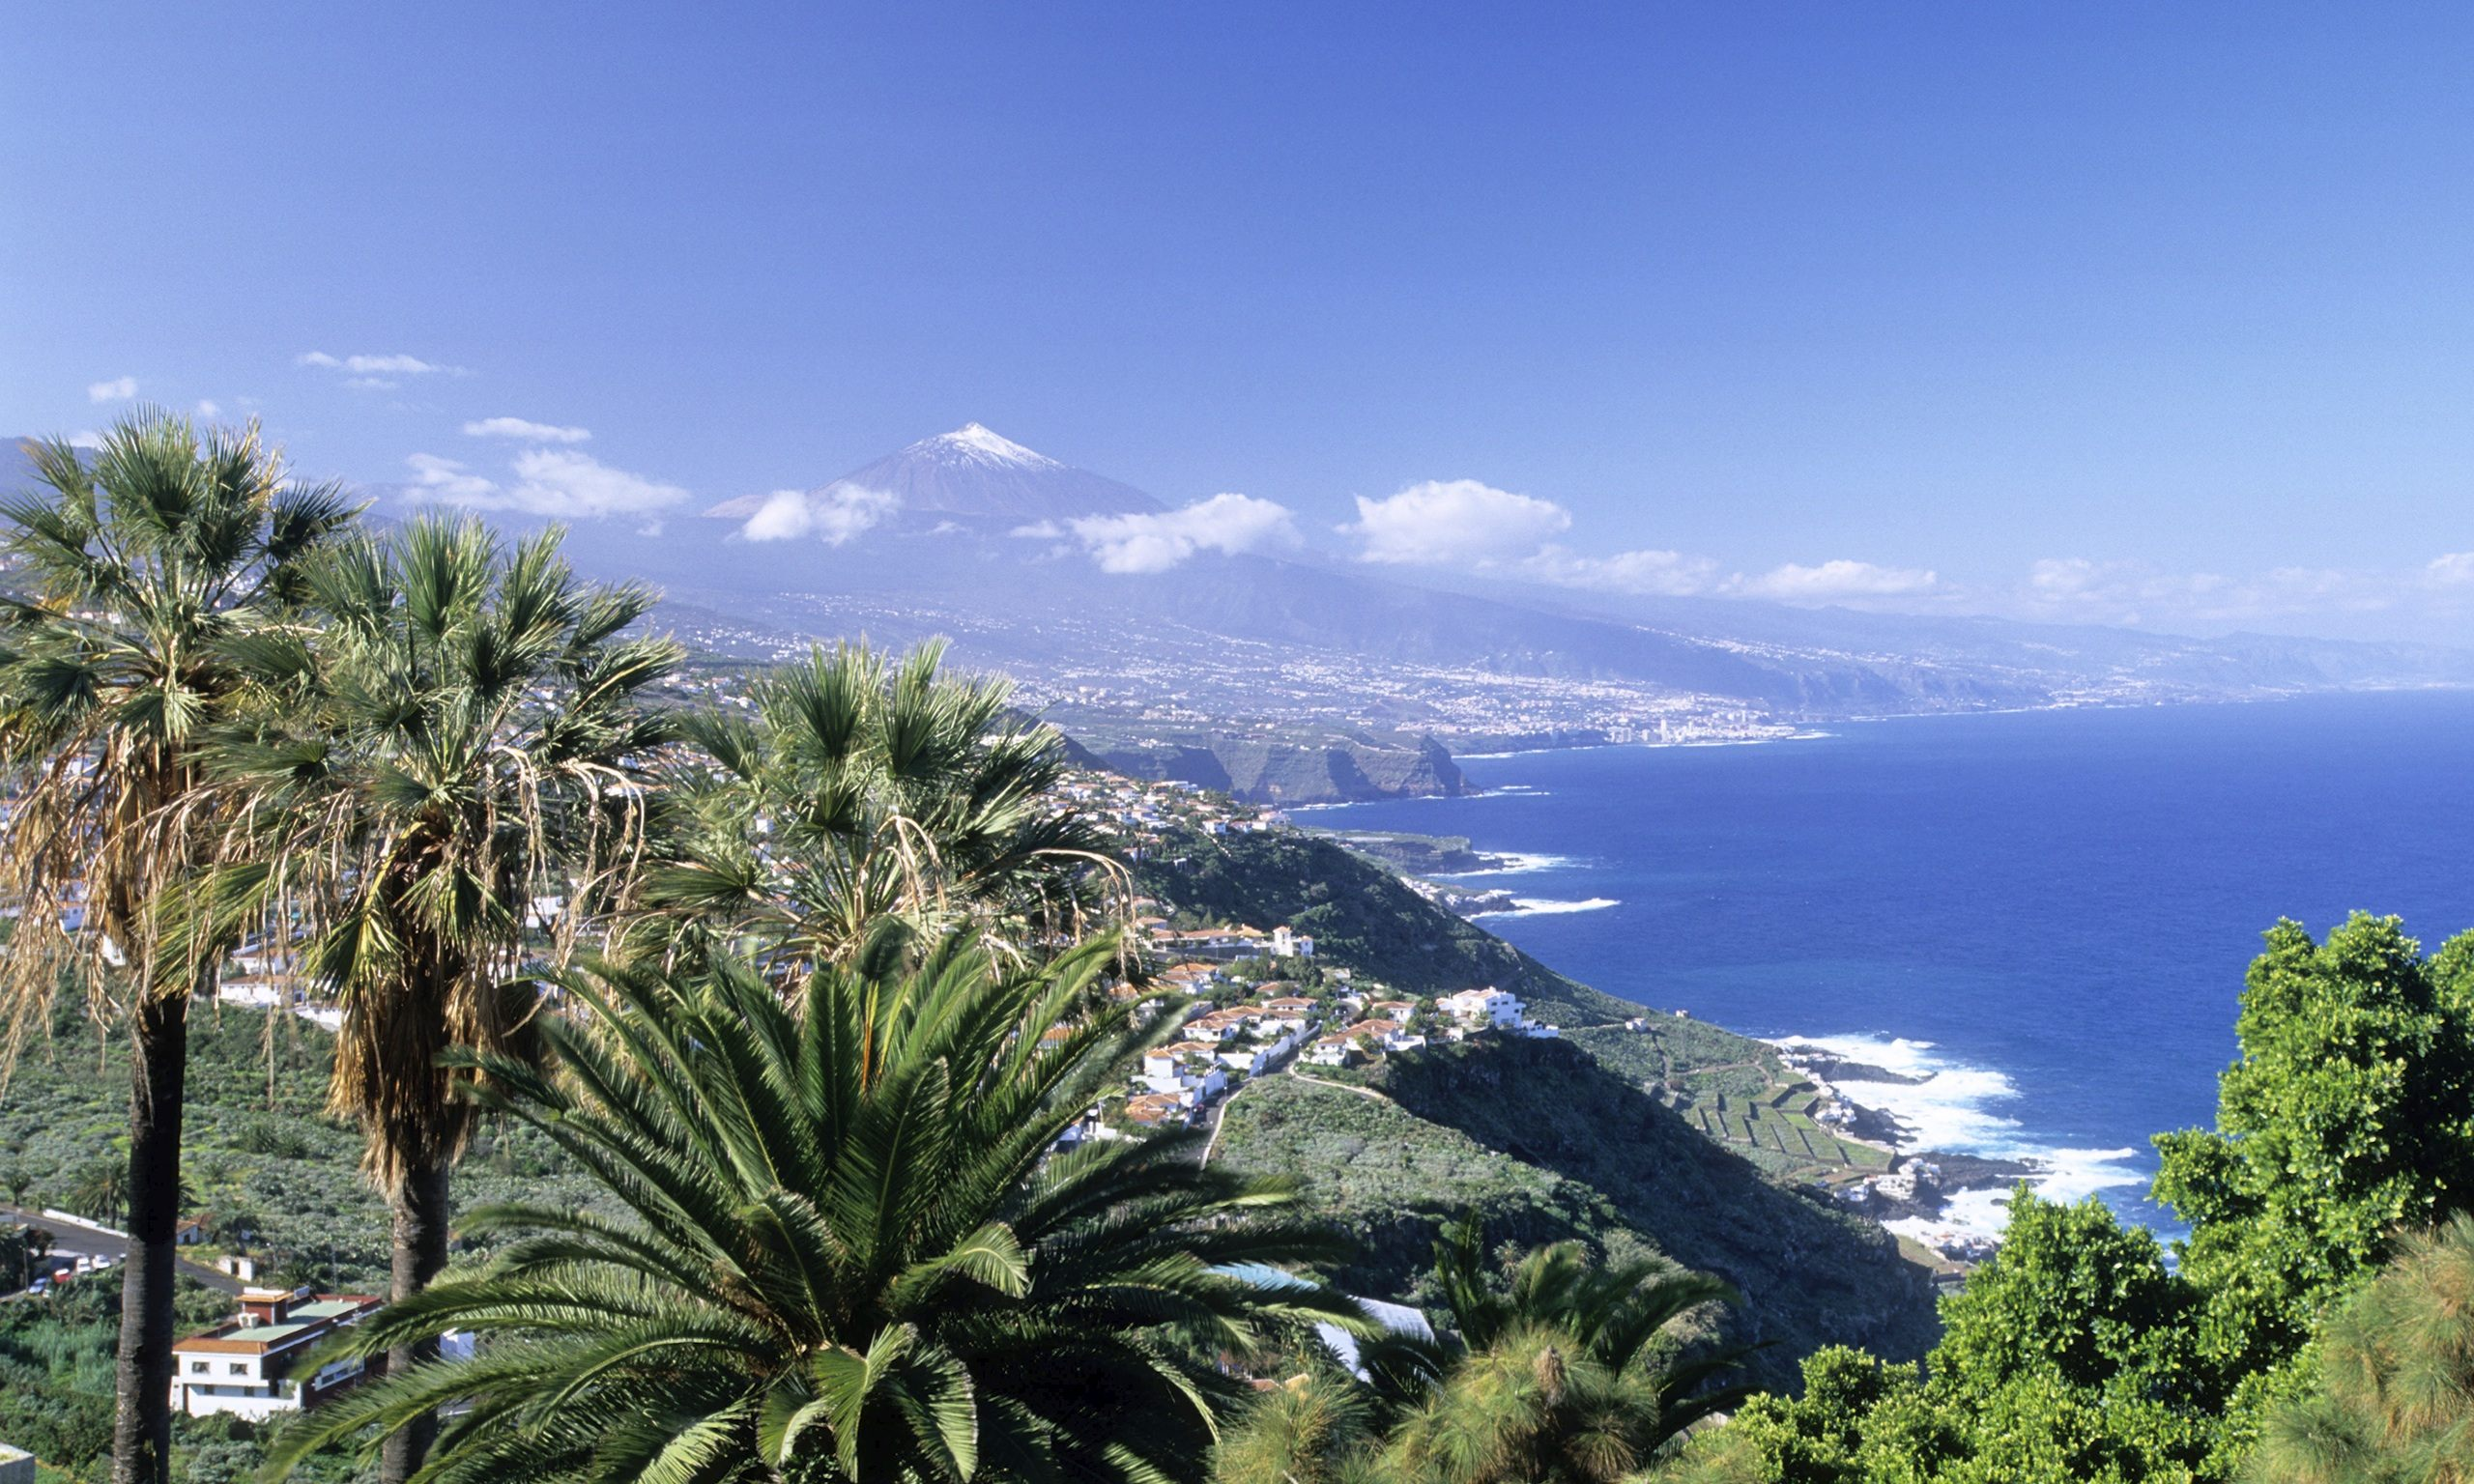 Two Britons wounded in Tenerife hotel explosion | World news | The Guardian